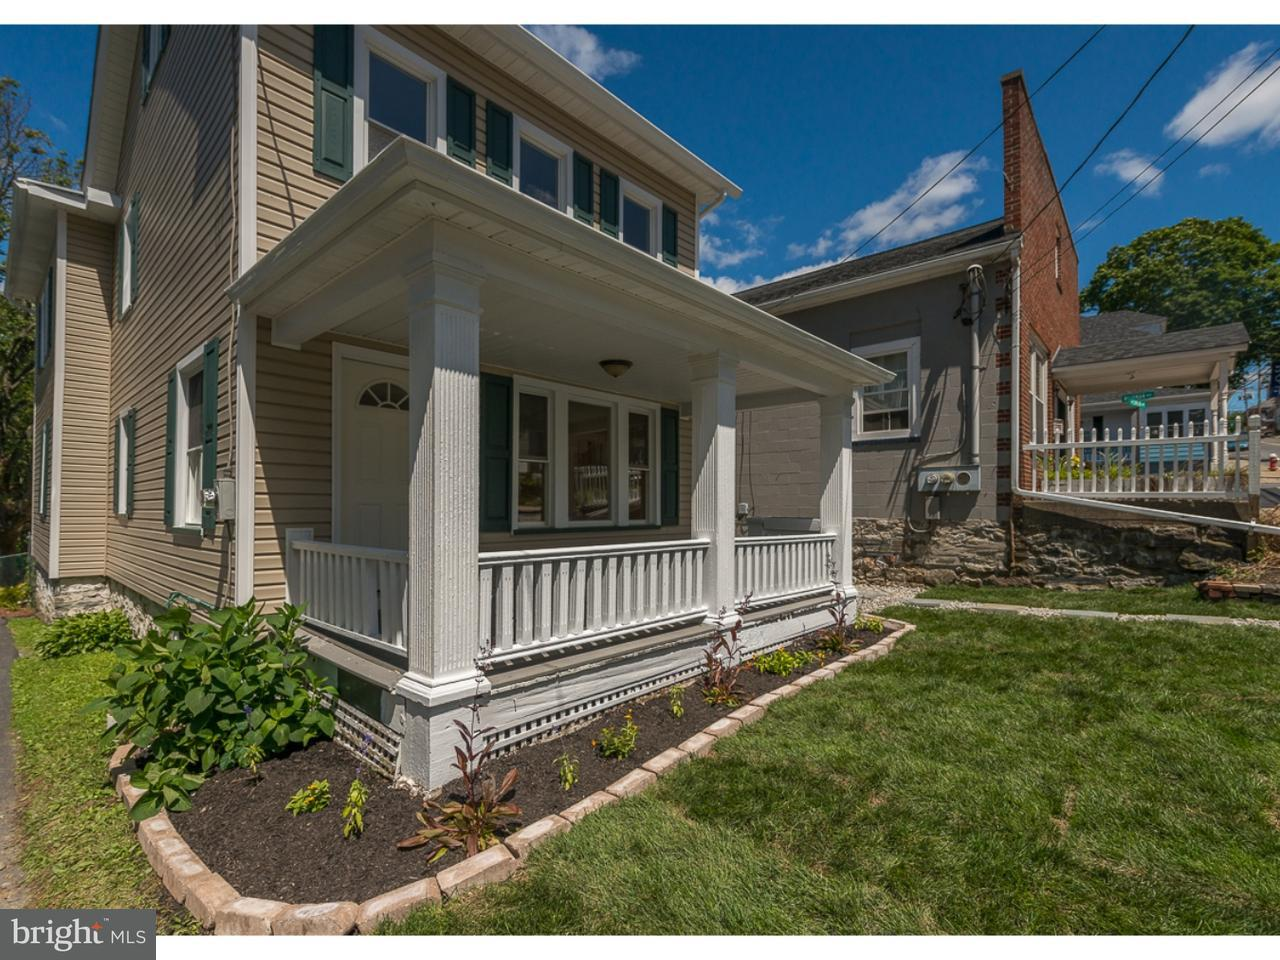 Single Family Home for Sale at 124 W CENTRAL Avenue Bangor, Pennsylvania 18013 United States